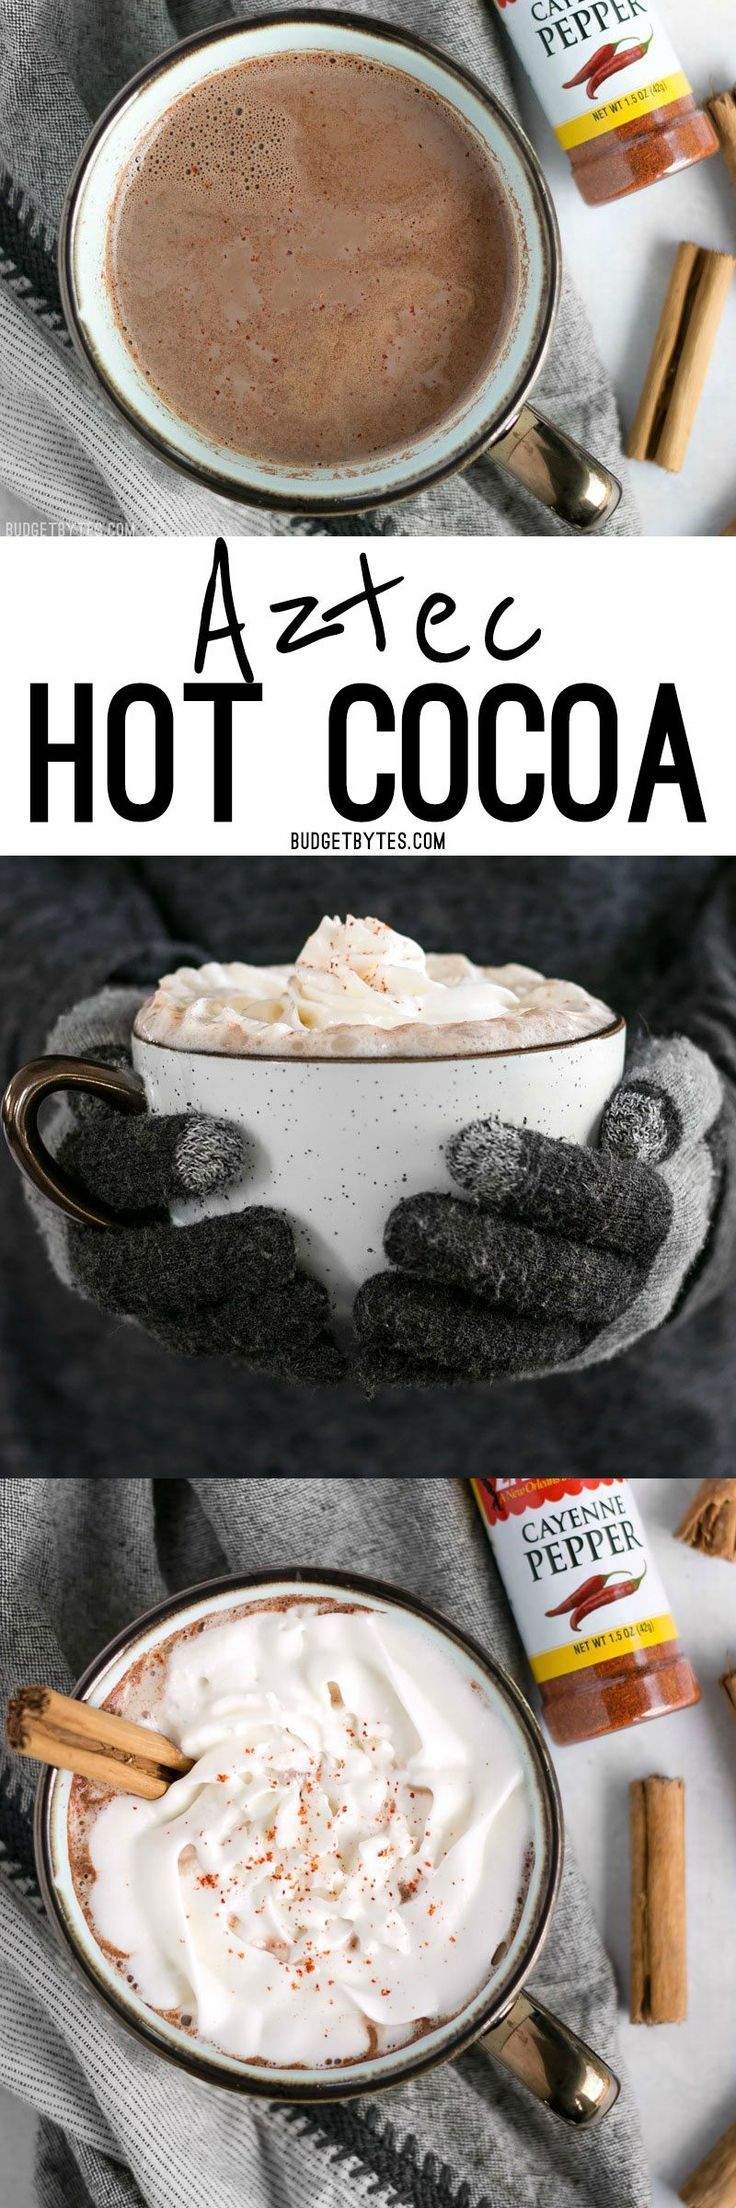 This Aztec cocoa is rich and warm with a touch of earthy cinnamon and a slight kick from cayenne pepper to heat you up inside and out. @budgetbytes